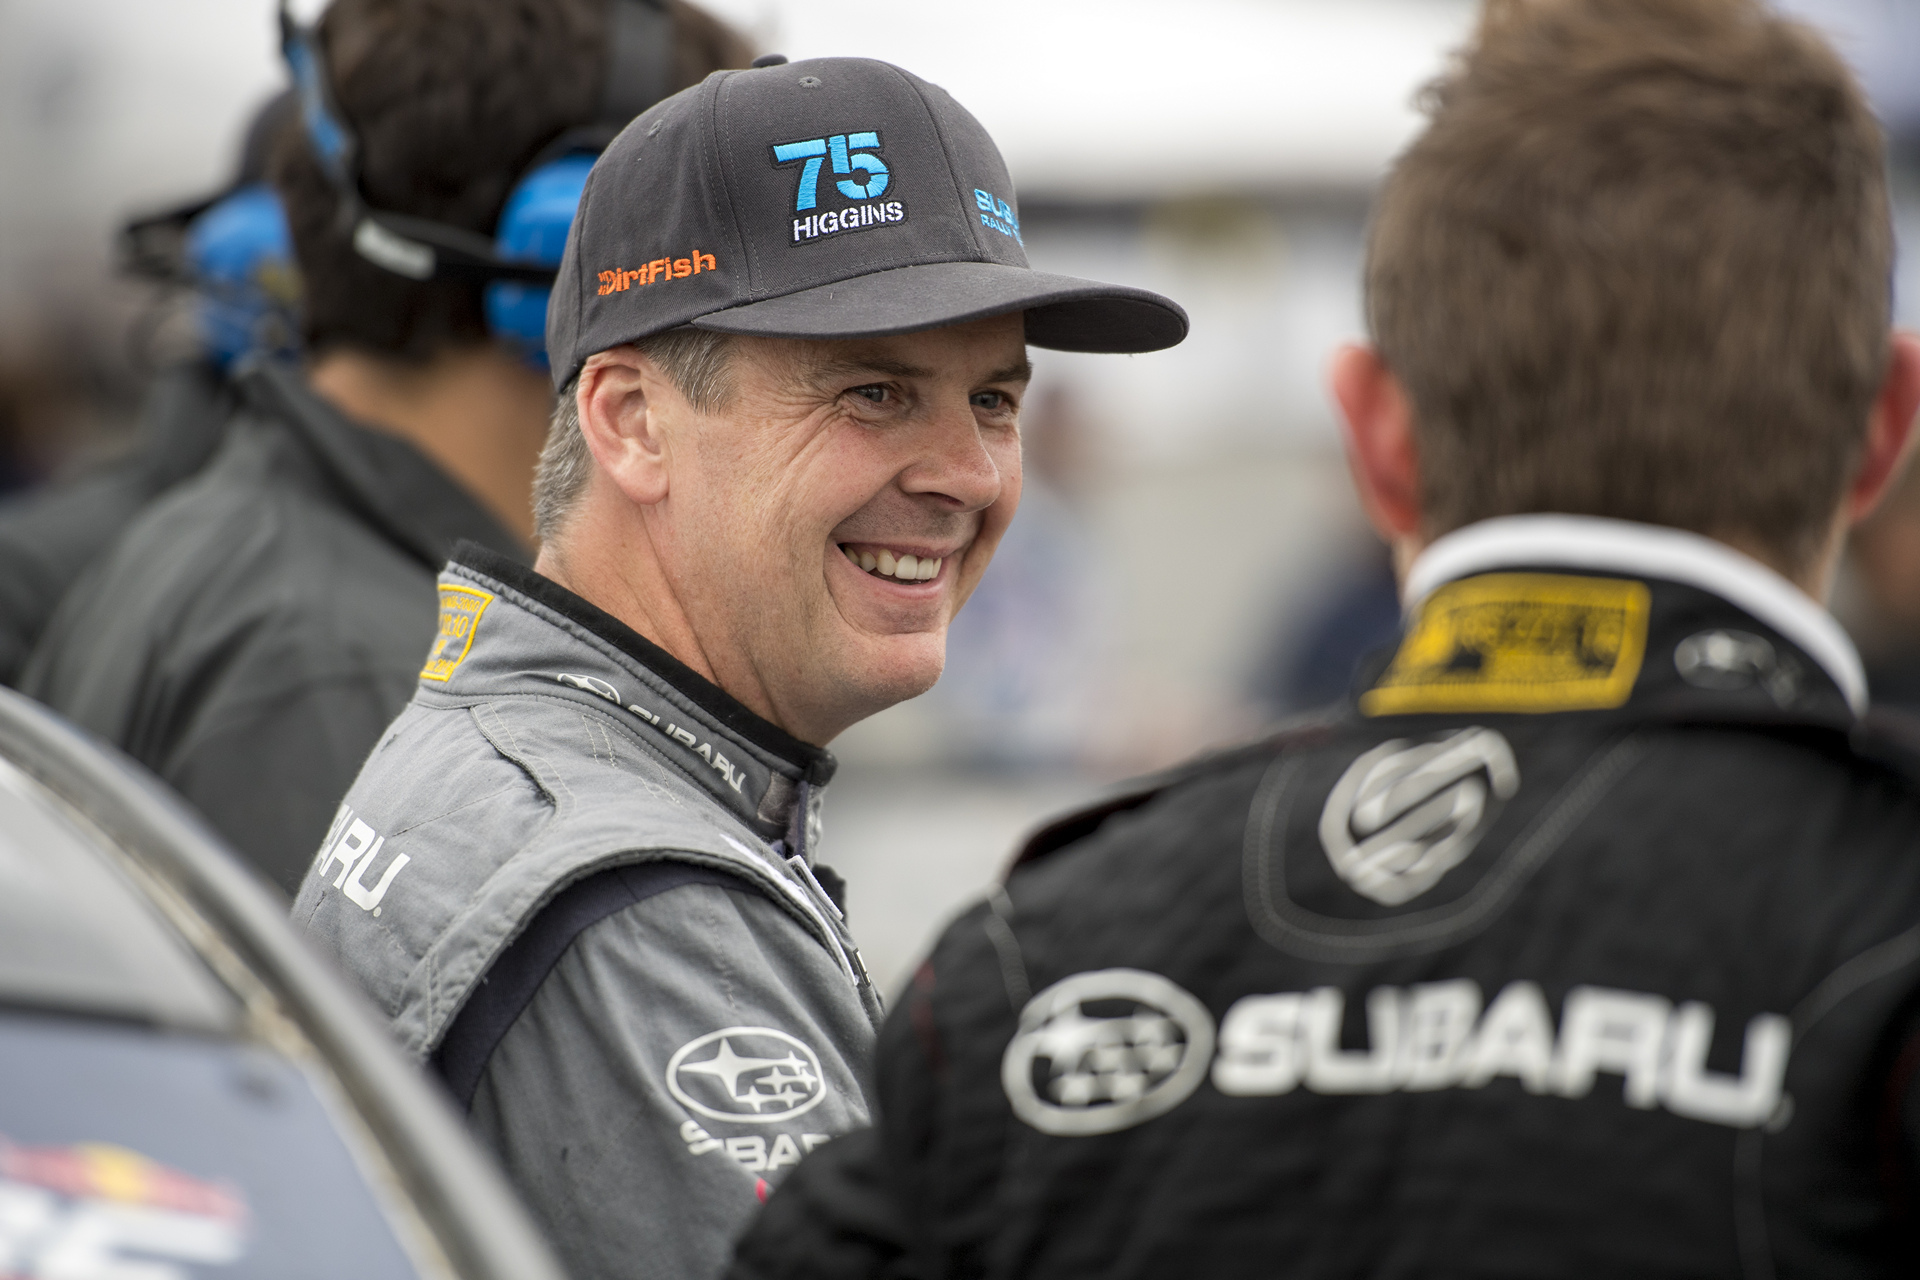 Defending Rally America Champion David Higgins at GRC Seattle © Fuji Heavy Industries, Ltd.